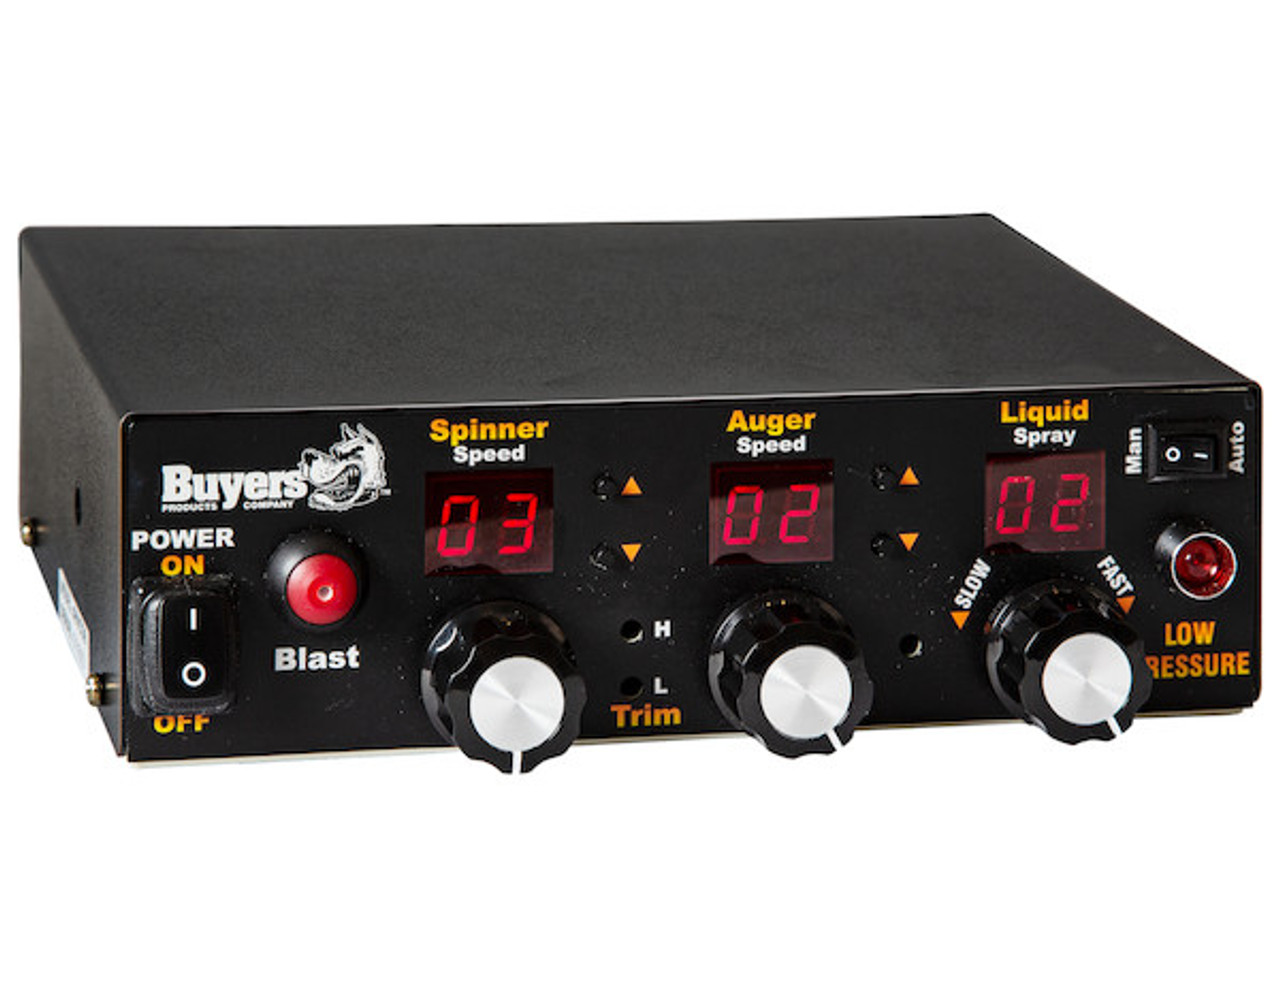 HVCO6 BUYERS PRODUCTS SALTDOGG ELECTRIC/HYDRAULIC SPREADER CONTROLLER WITH GROUND SPEED INPUT AND GPS 2